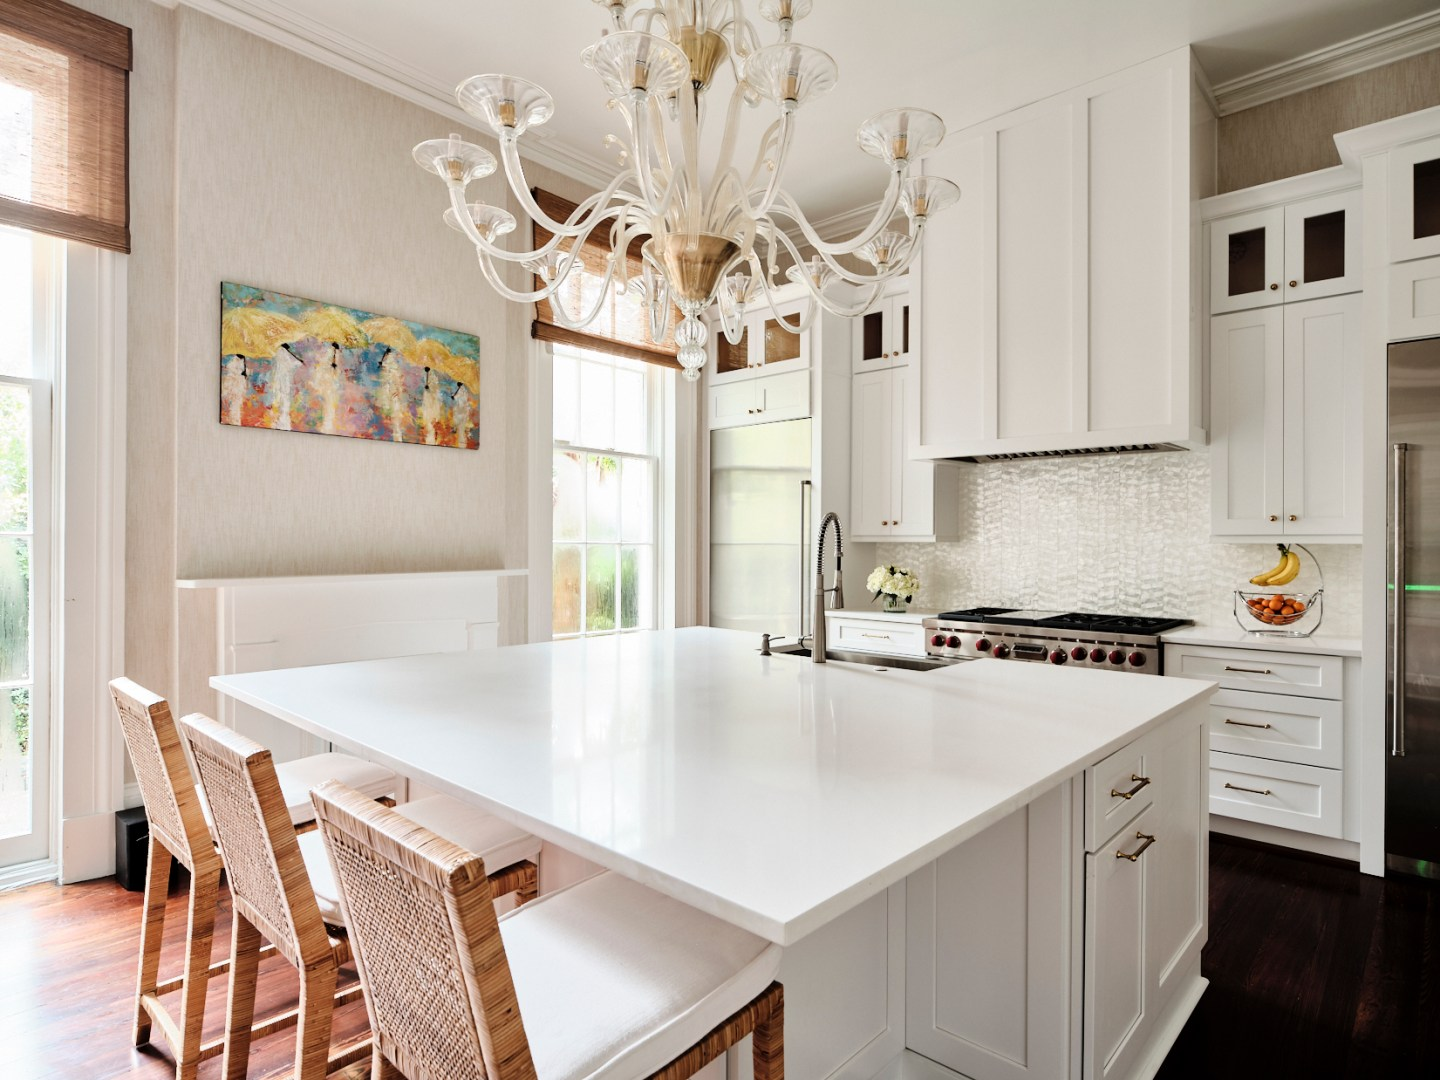 St_Charles_Finals_Web_Res-10-1440x1080 Tips To Consider When Remodeling a Kitchen from New Orleans Designer, April Vogt